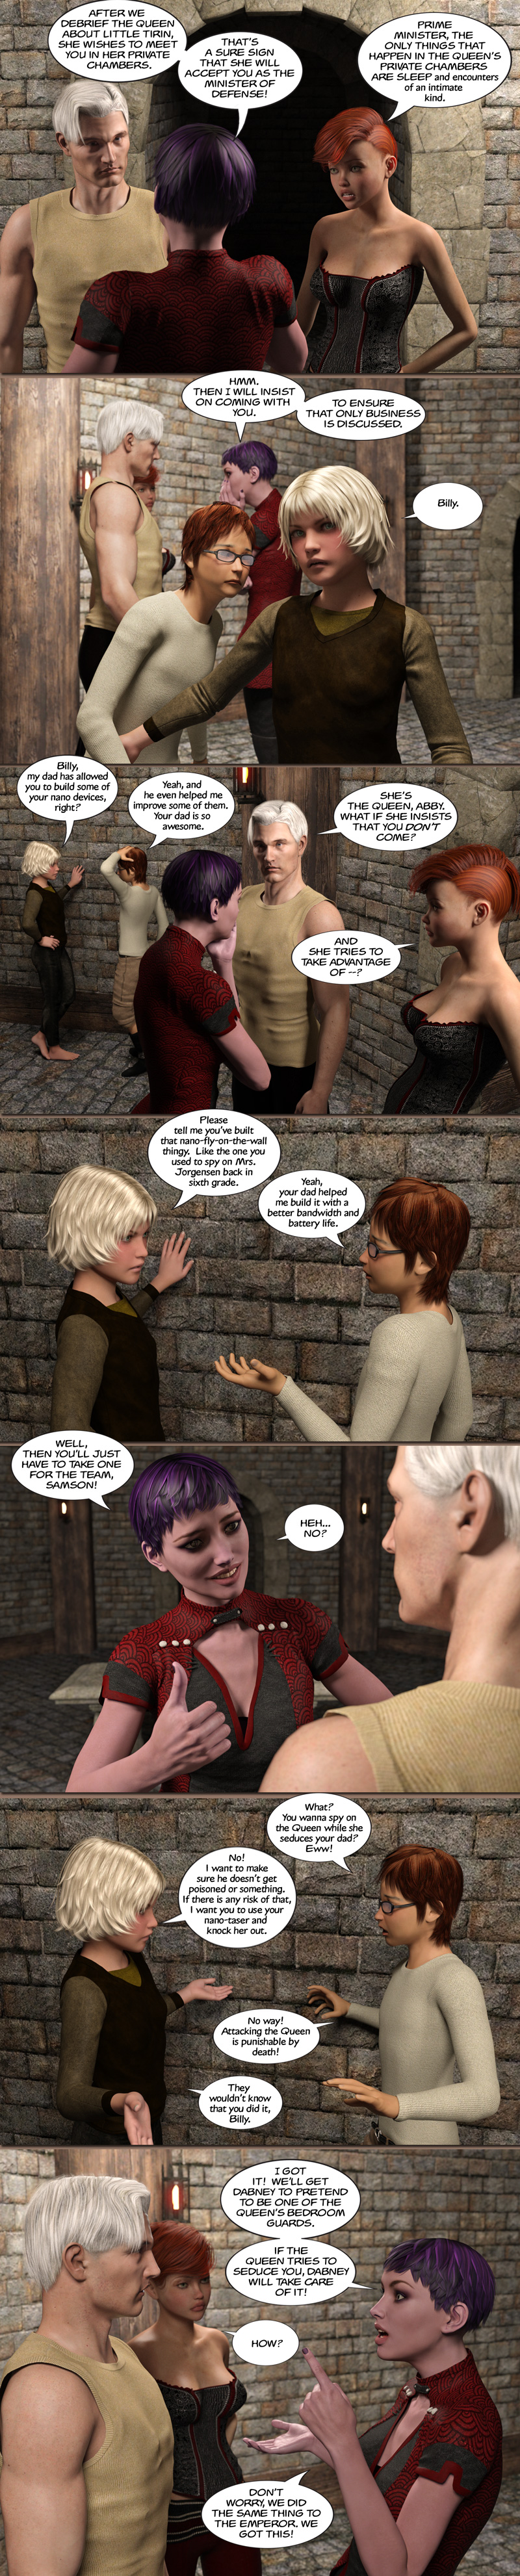 Chapter 17, page 37